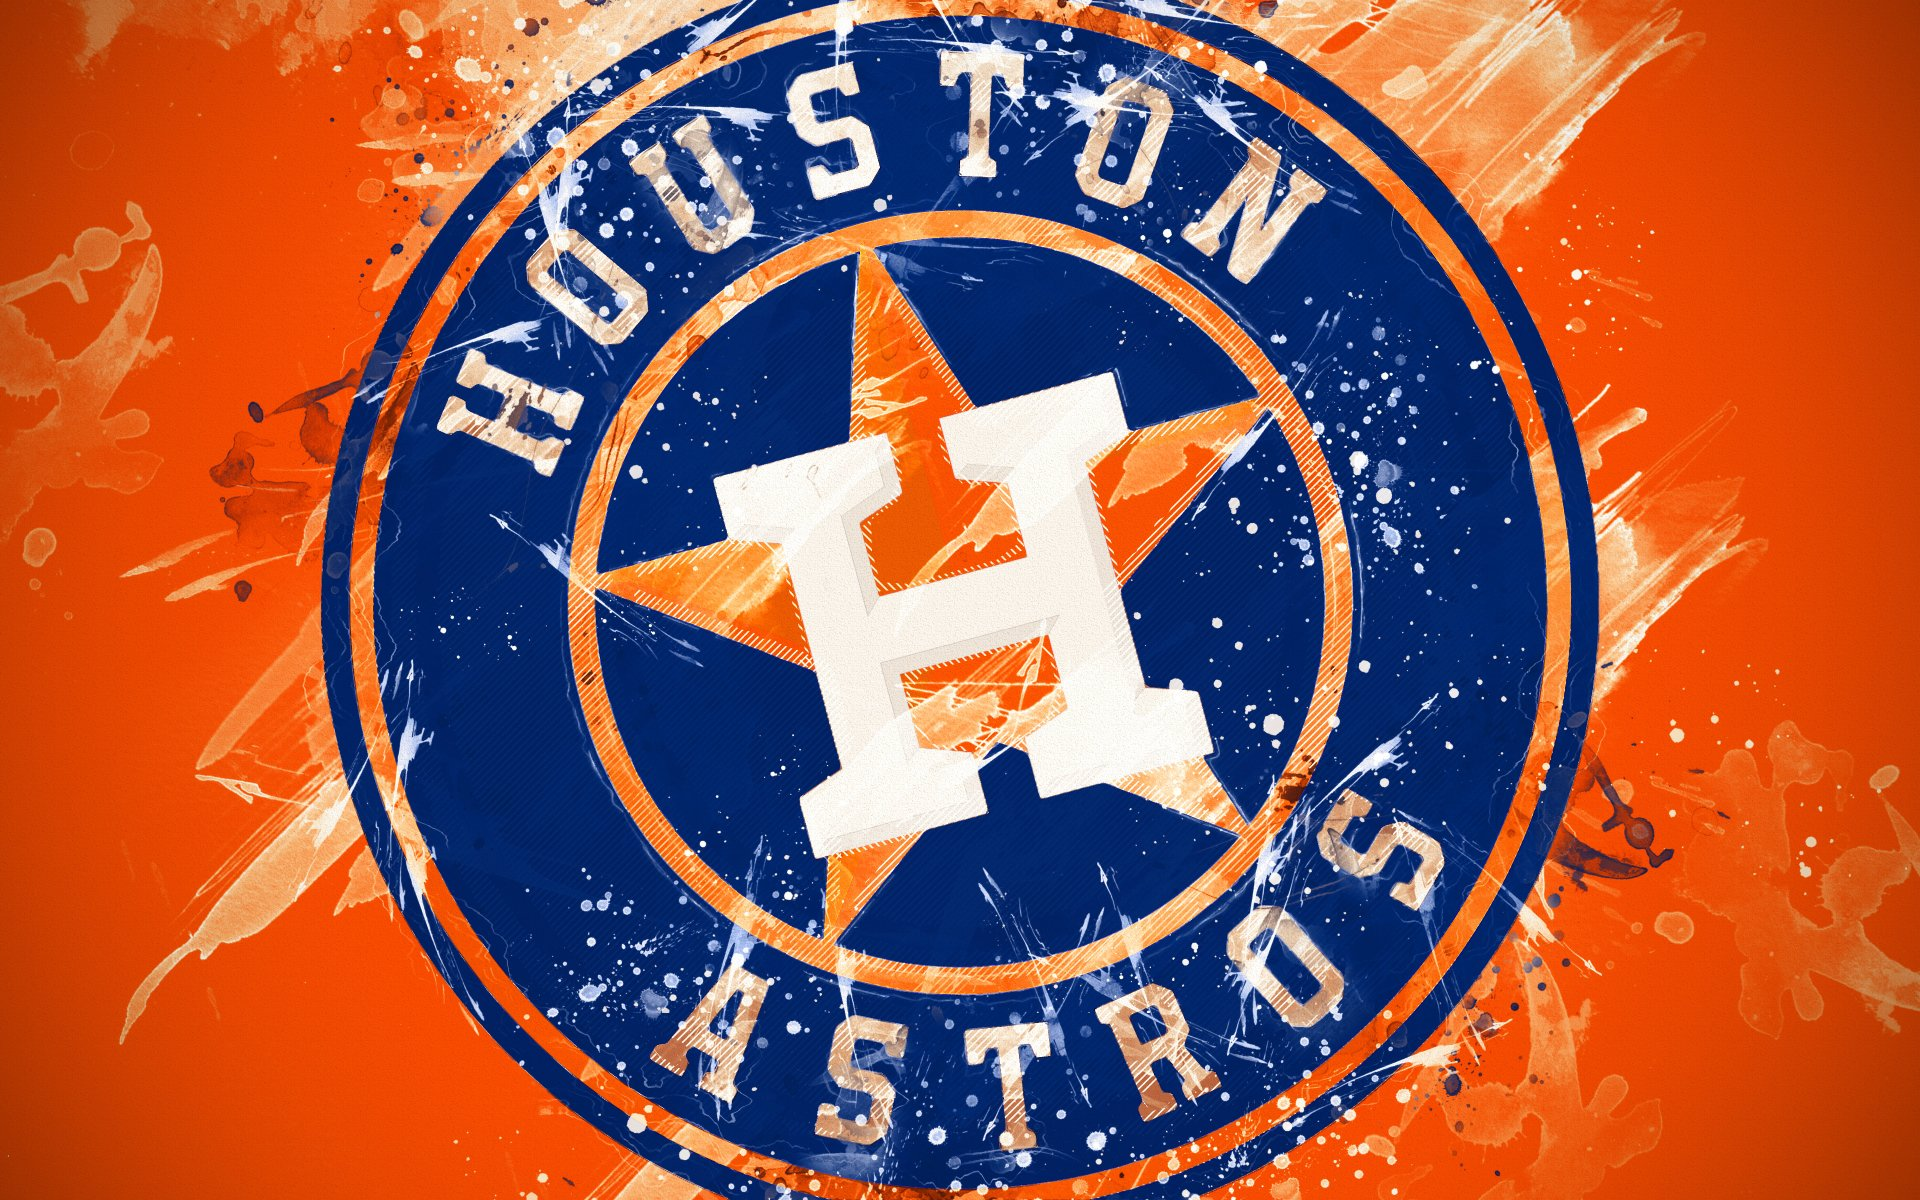 8 Houston Astros Hd Wallpapers Background Images